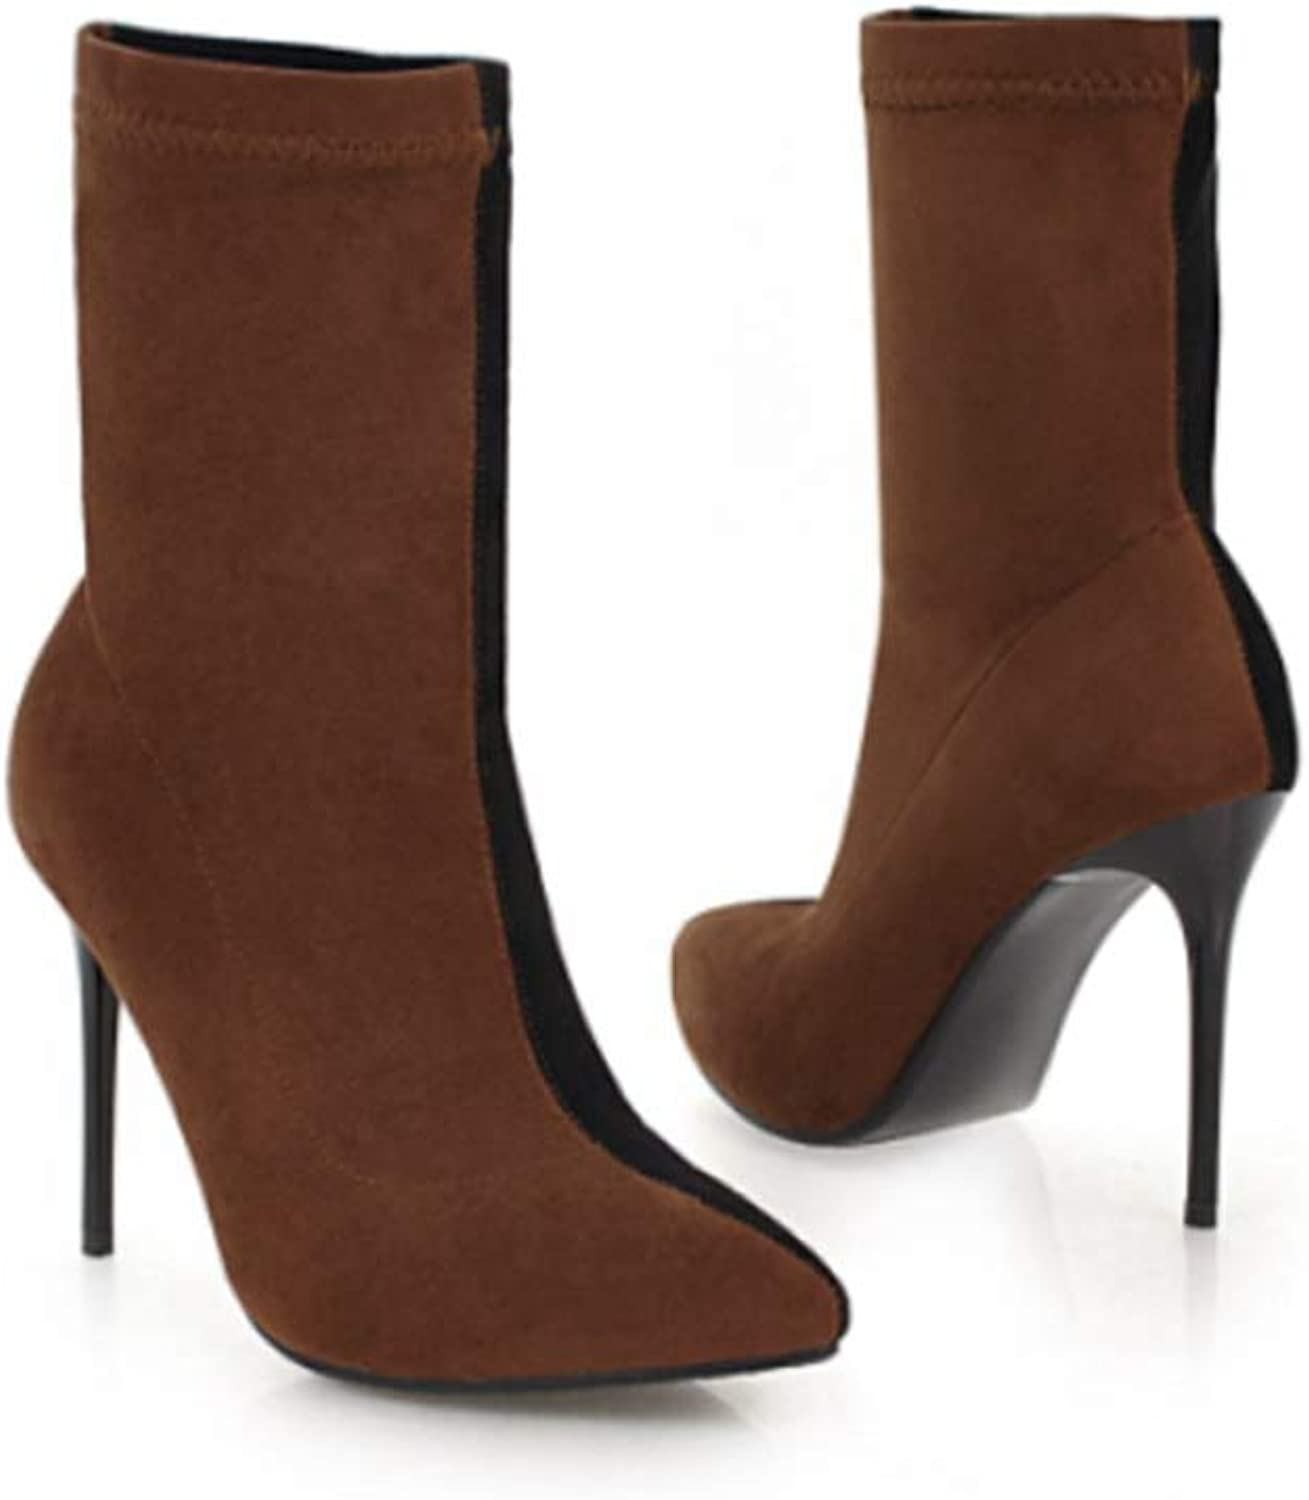 Hoxekle Women Winter Mid Calf Boots High Thin Heels Slip on Mixed colors Pointed Toe Sexy shoes